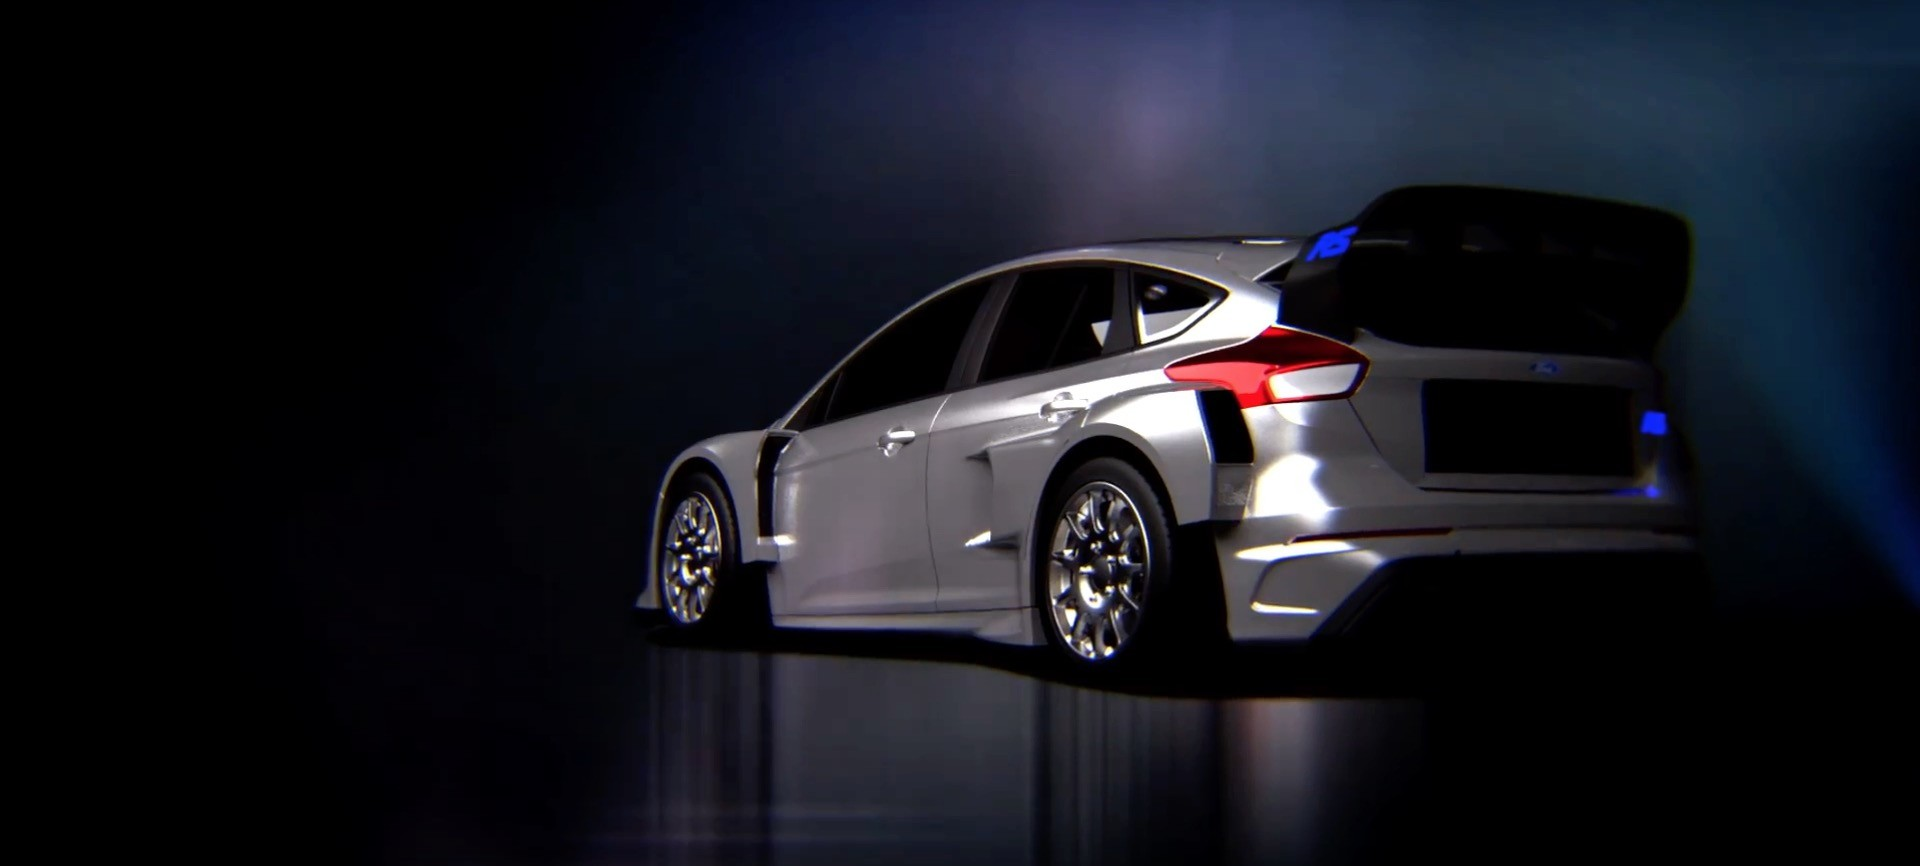 Ford Focus Rs Rx >> Gymkhana 8 Doesn't Live Up to Expectations, Ford Focus RS RX Teased - autoevolution